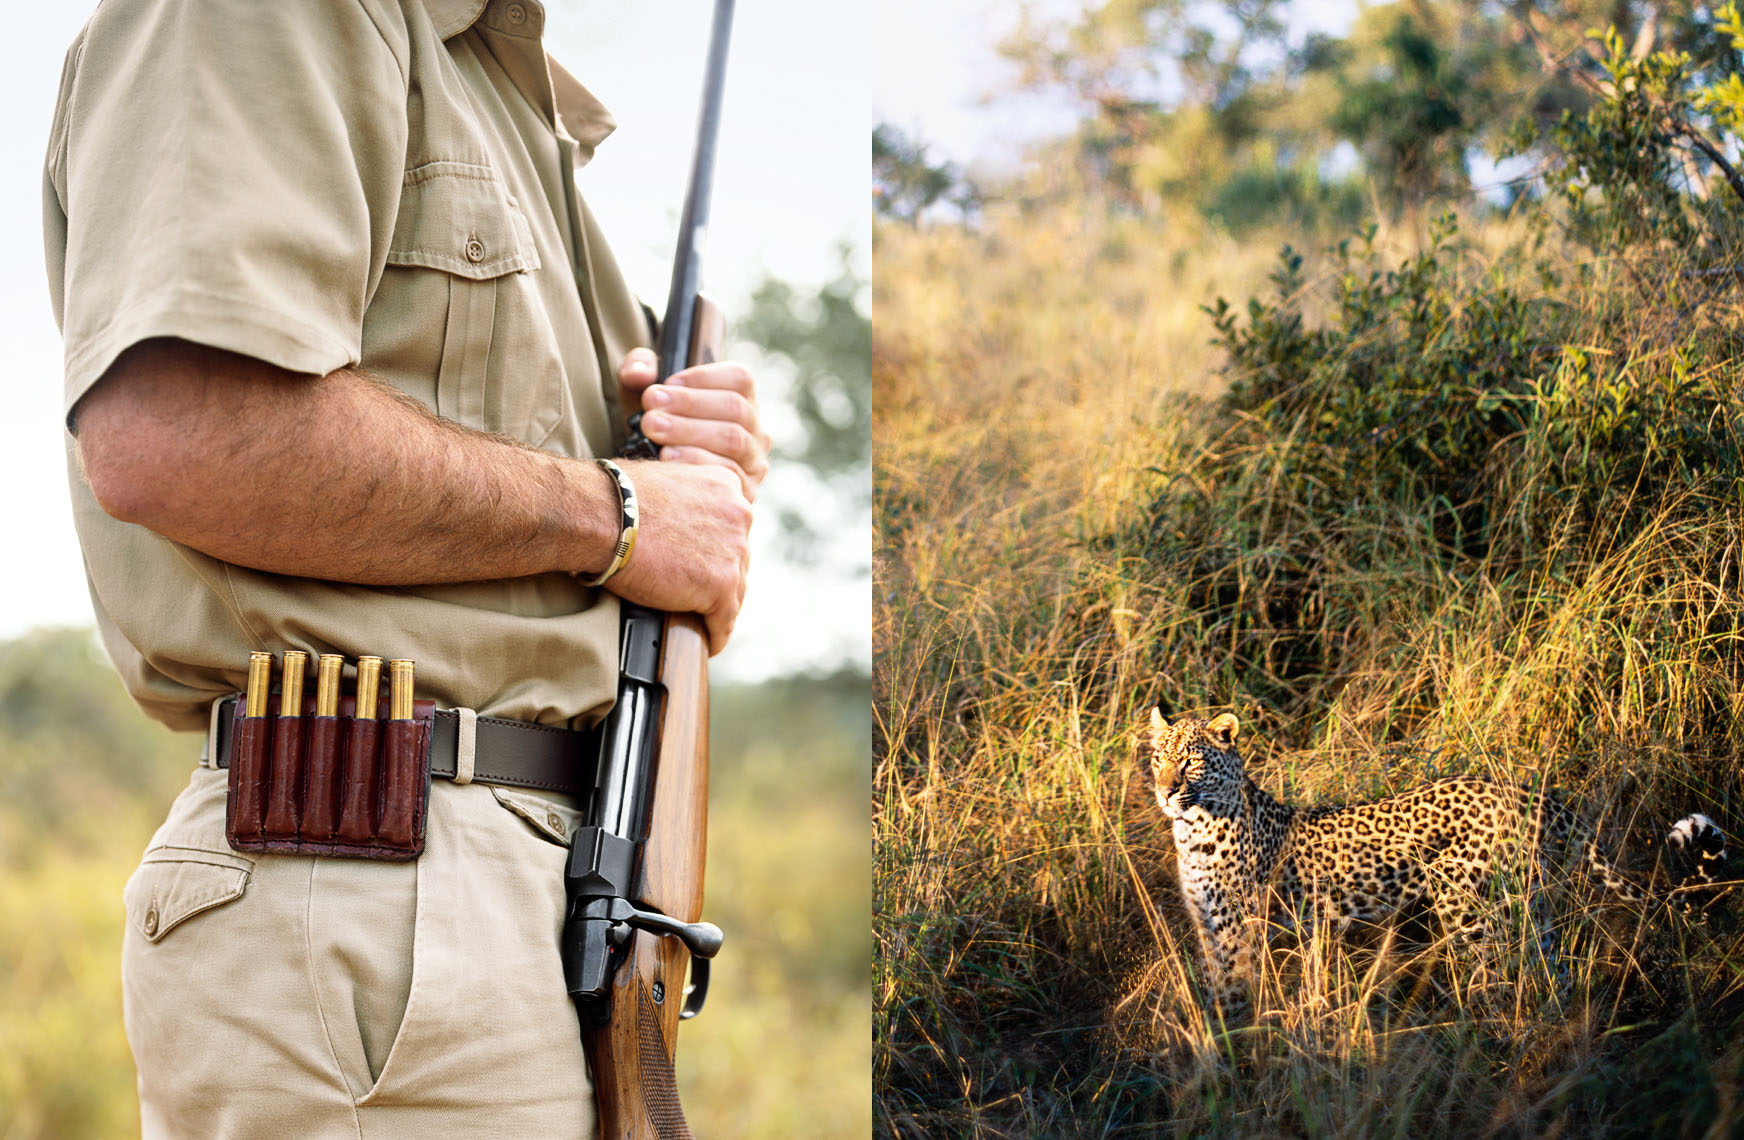 Ranger armed for protection, not hunting, from beautiful but dangerous animals, such as the cheetah